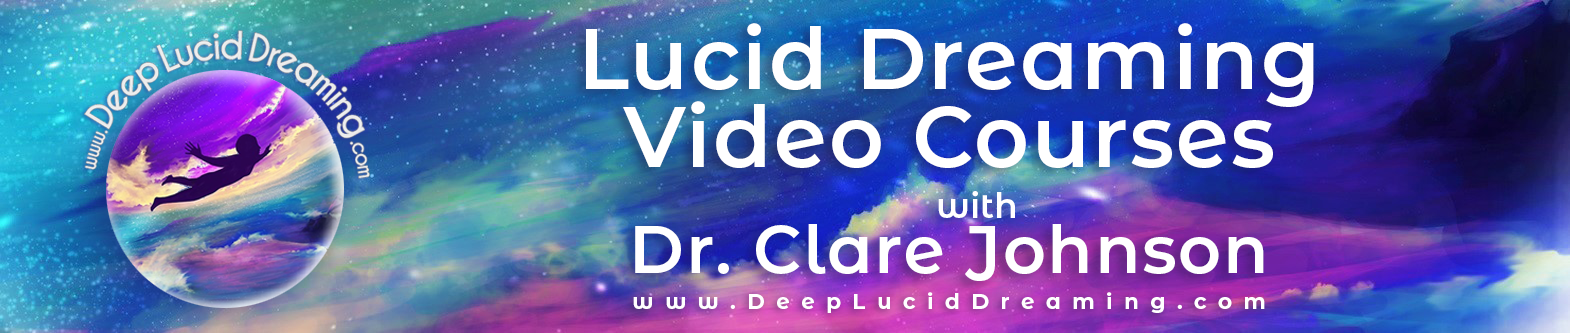 Video Courses Lucid-Dreaming